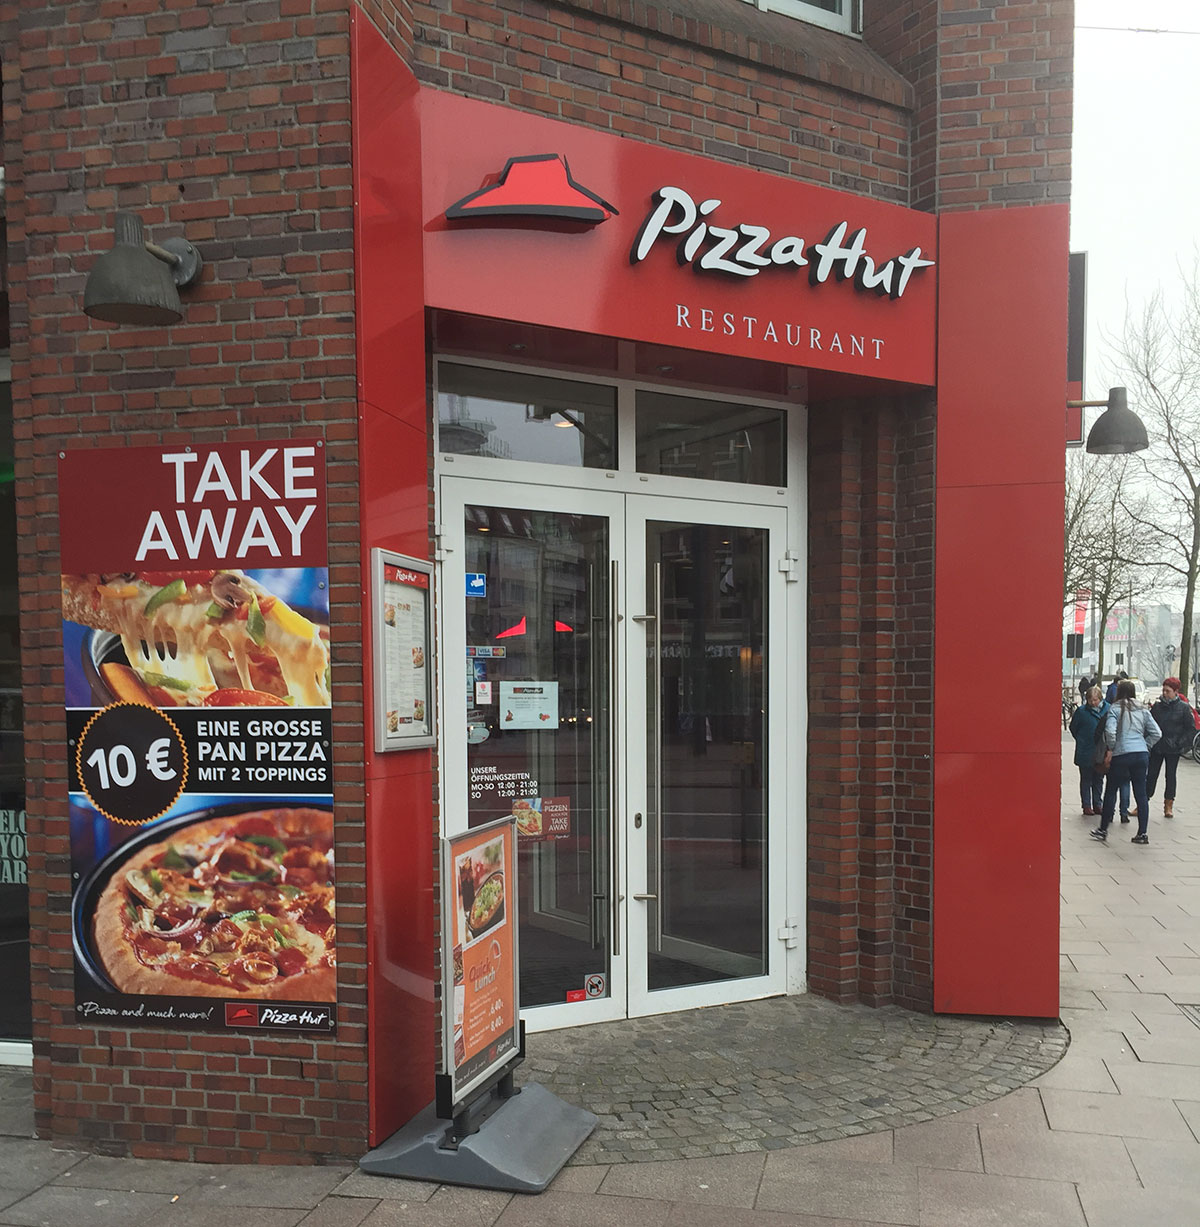 Testseite Pizza Hut Restaurants